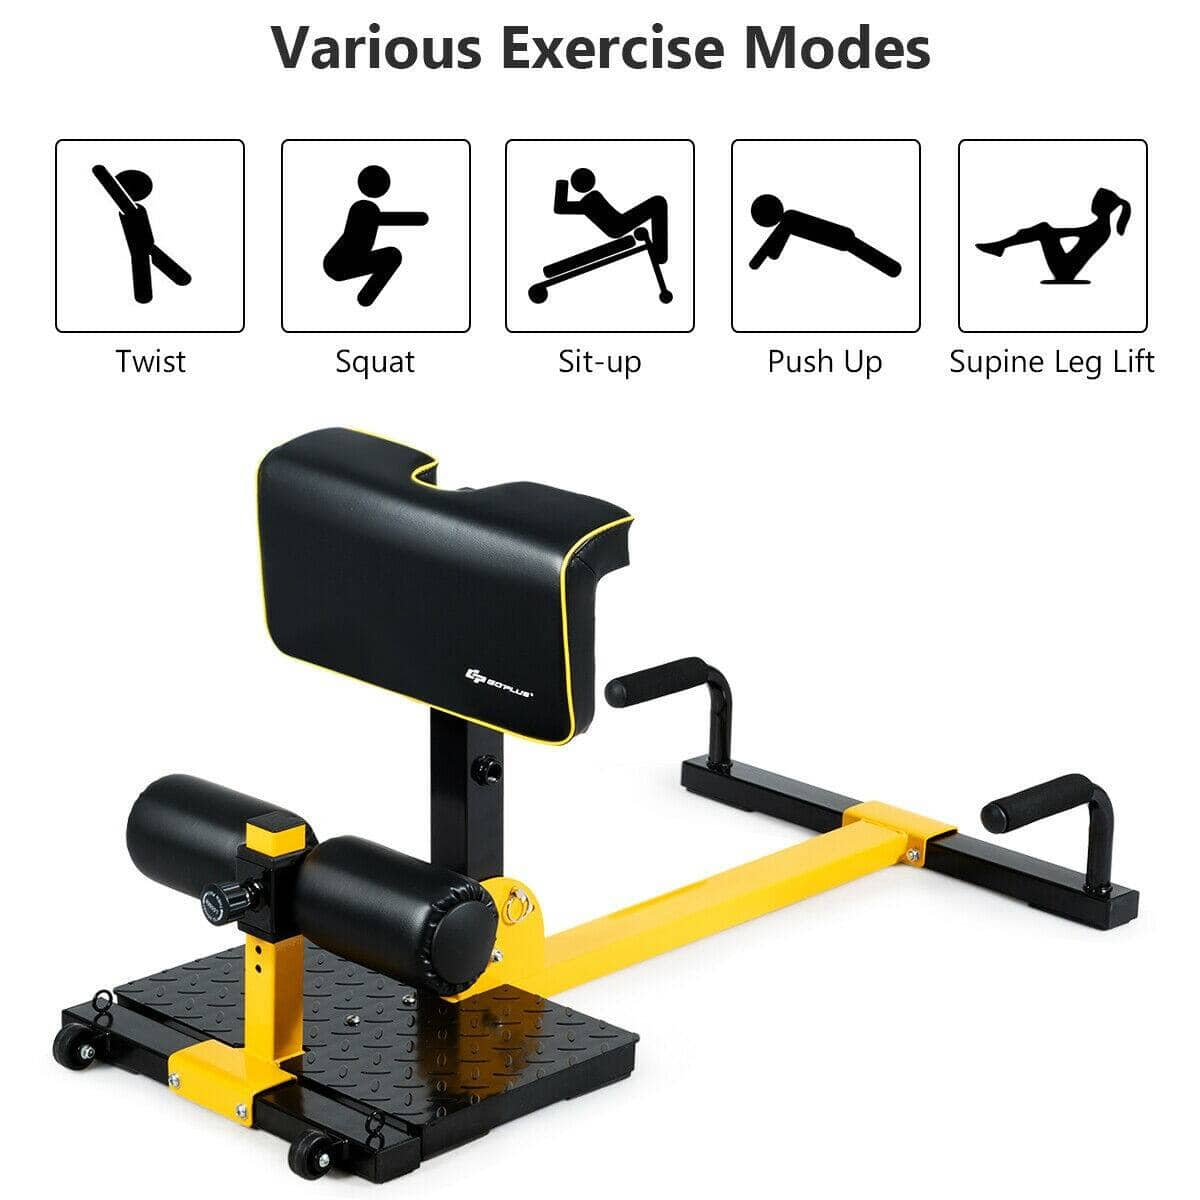 8-in-1 Multifunctional Home Gym Squat Fitness Equipment $85.95 + Free Shipping